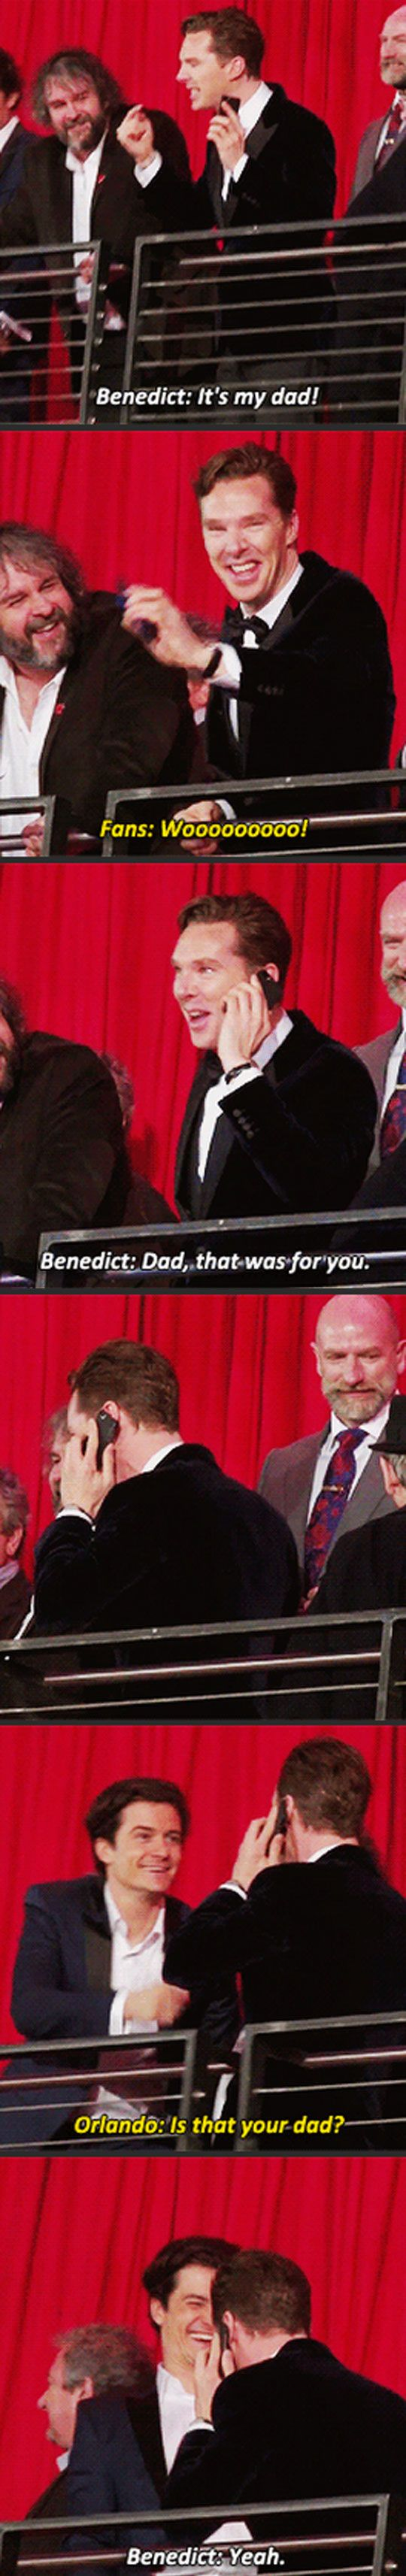 Bennedict and his dad…Why do I love this so much?! Orlando makes this that much better :)